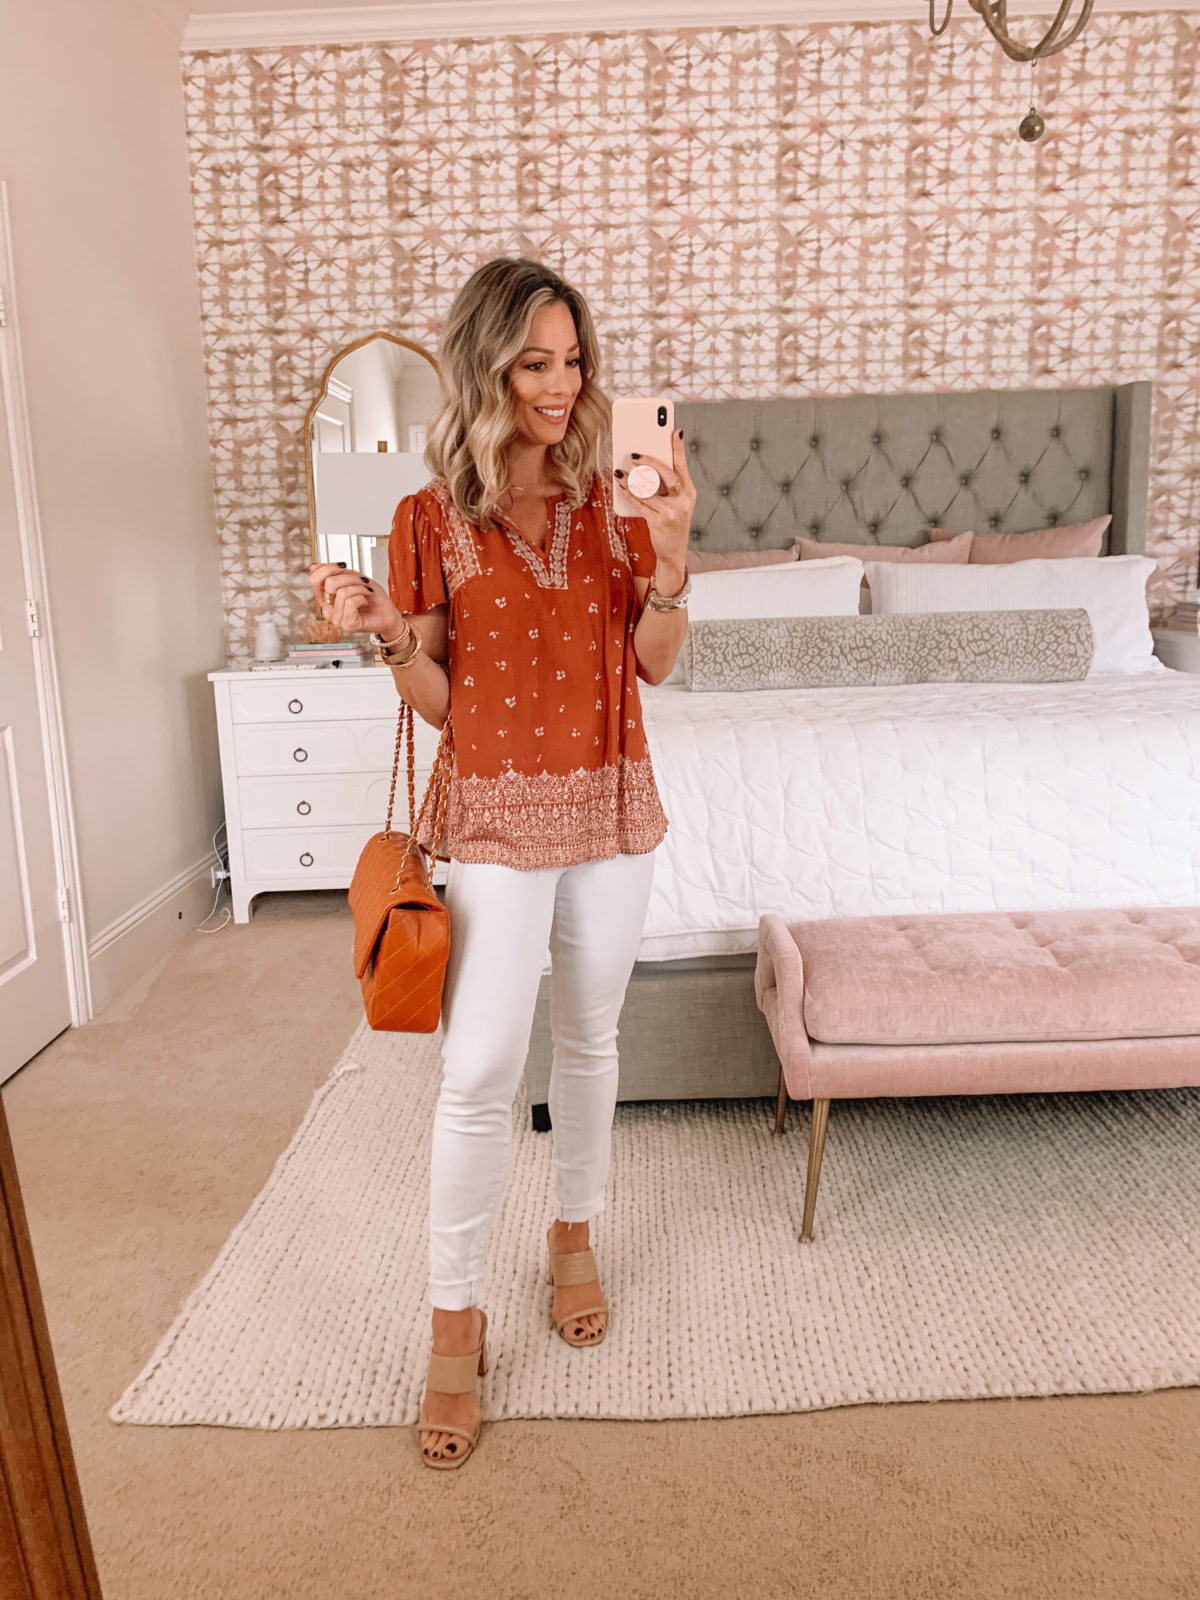 Dressing Room Finds Target, Boho Top, Jeans, Sandals, Crossbody